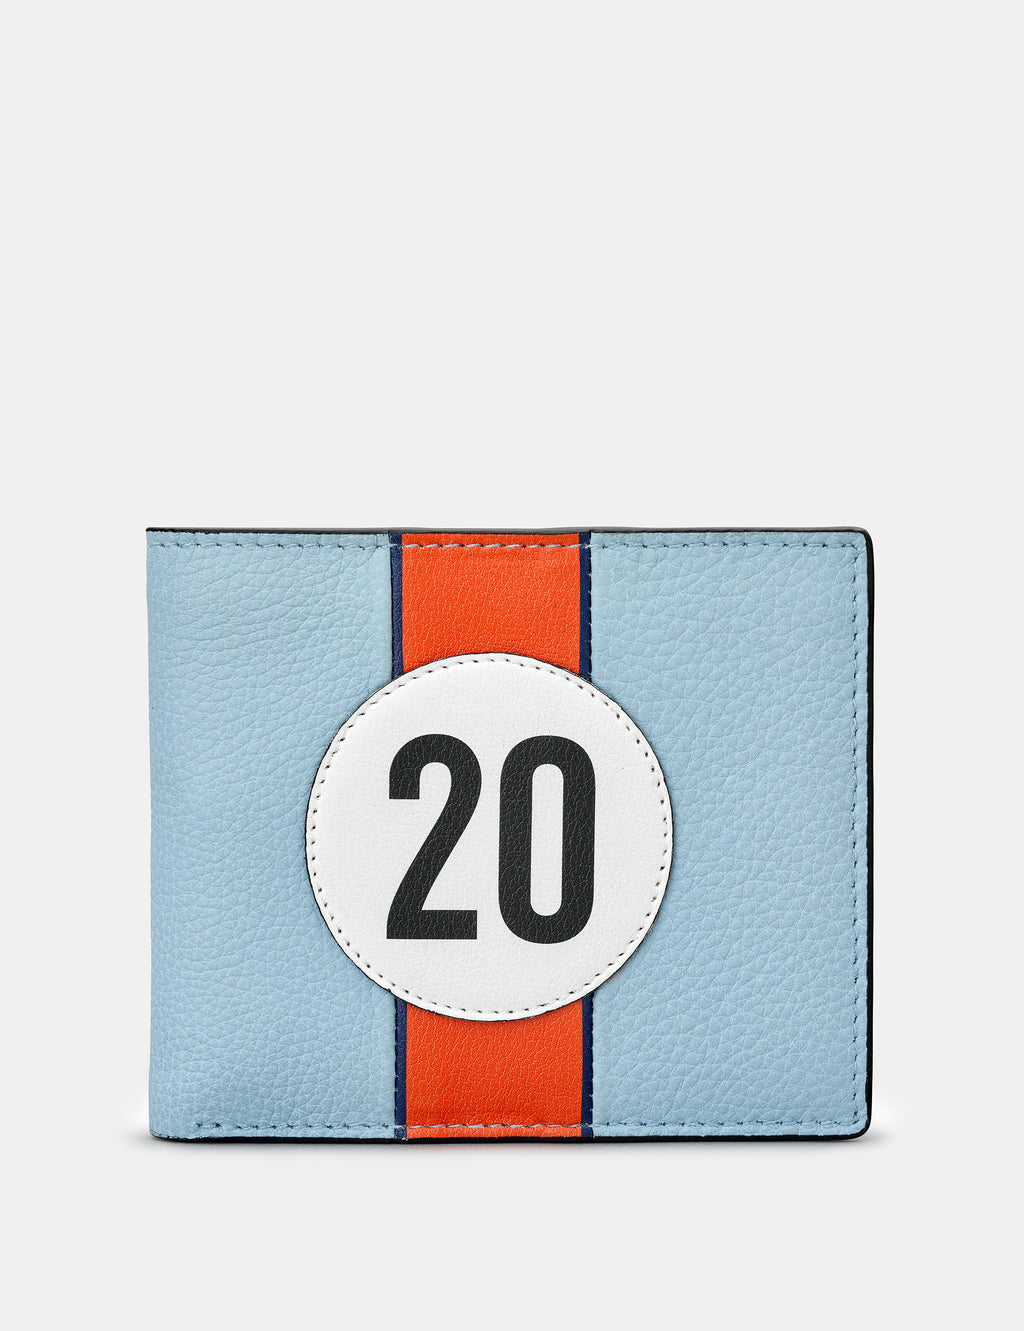 Car Livery No. 20 Blue and Black Leather Wallet